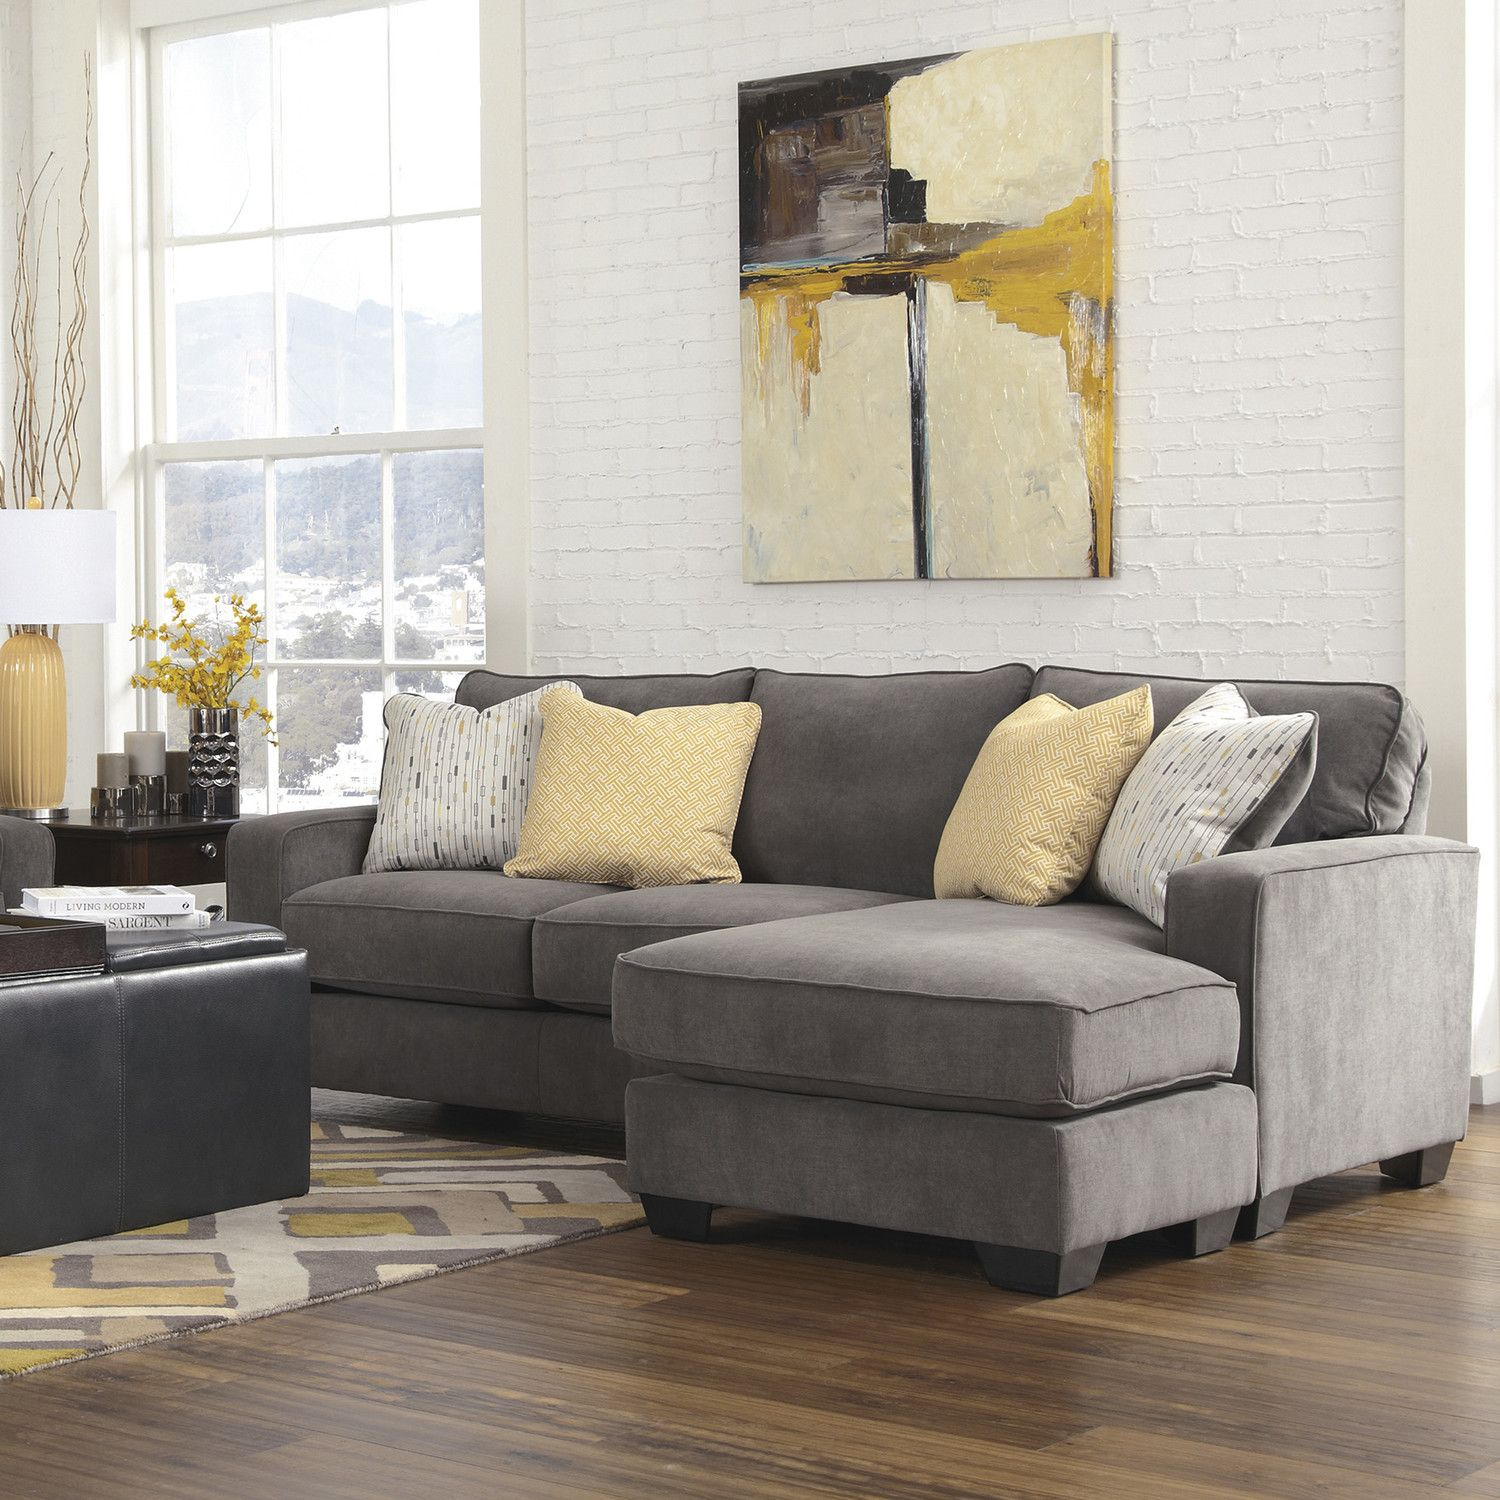 Signature Design by Ashley Hollins Right Hand Facing Sectional